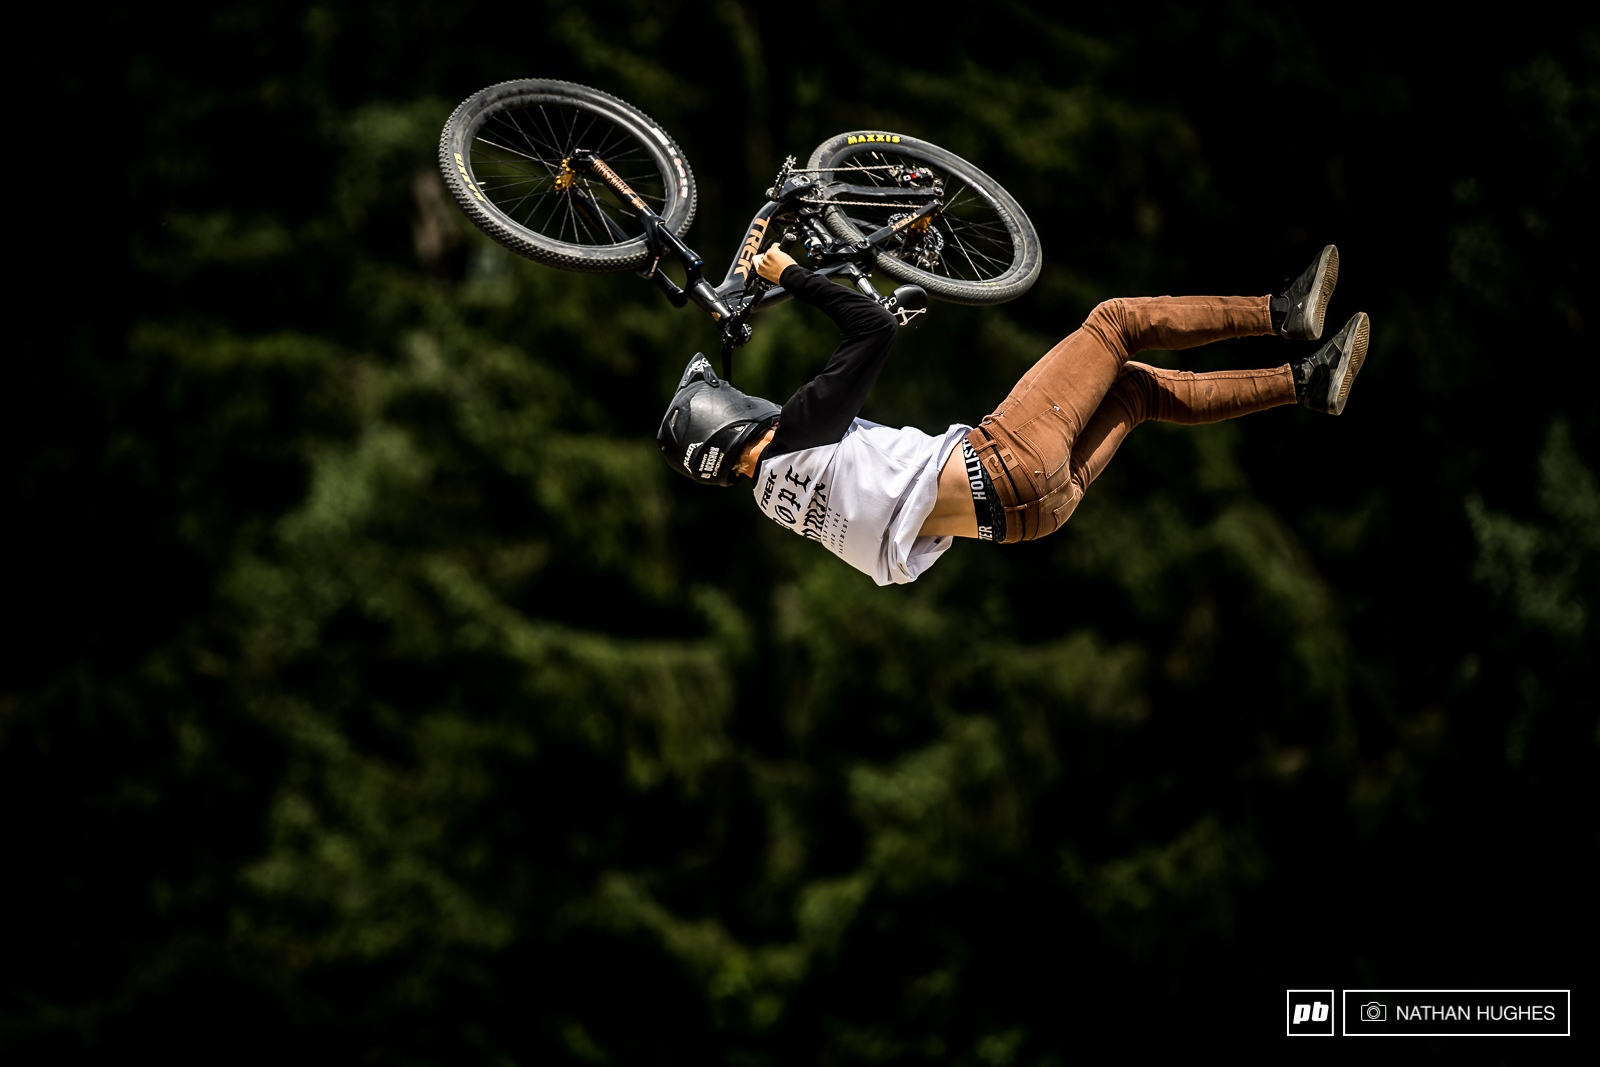 Emil Johansson s double down whips are pretty special.